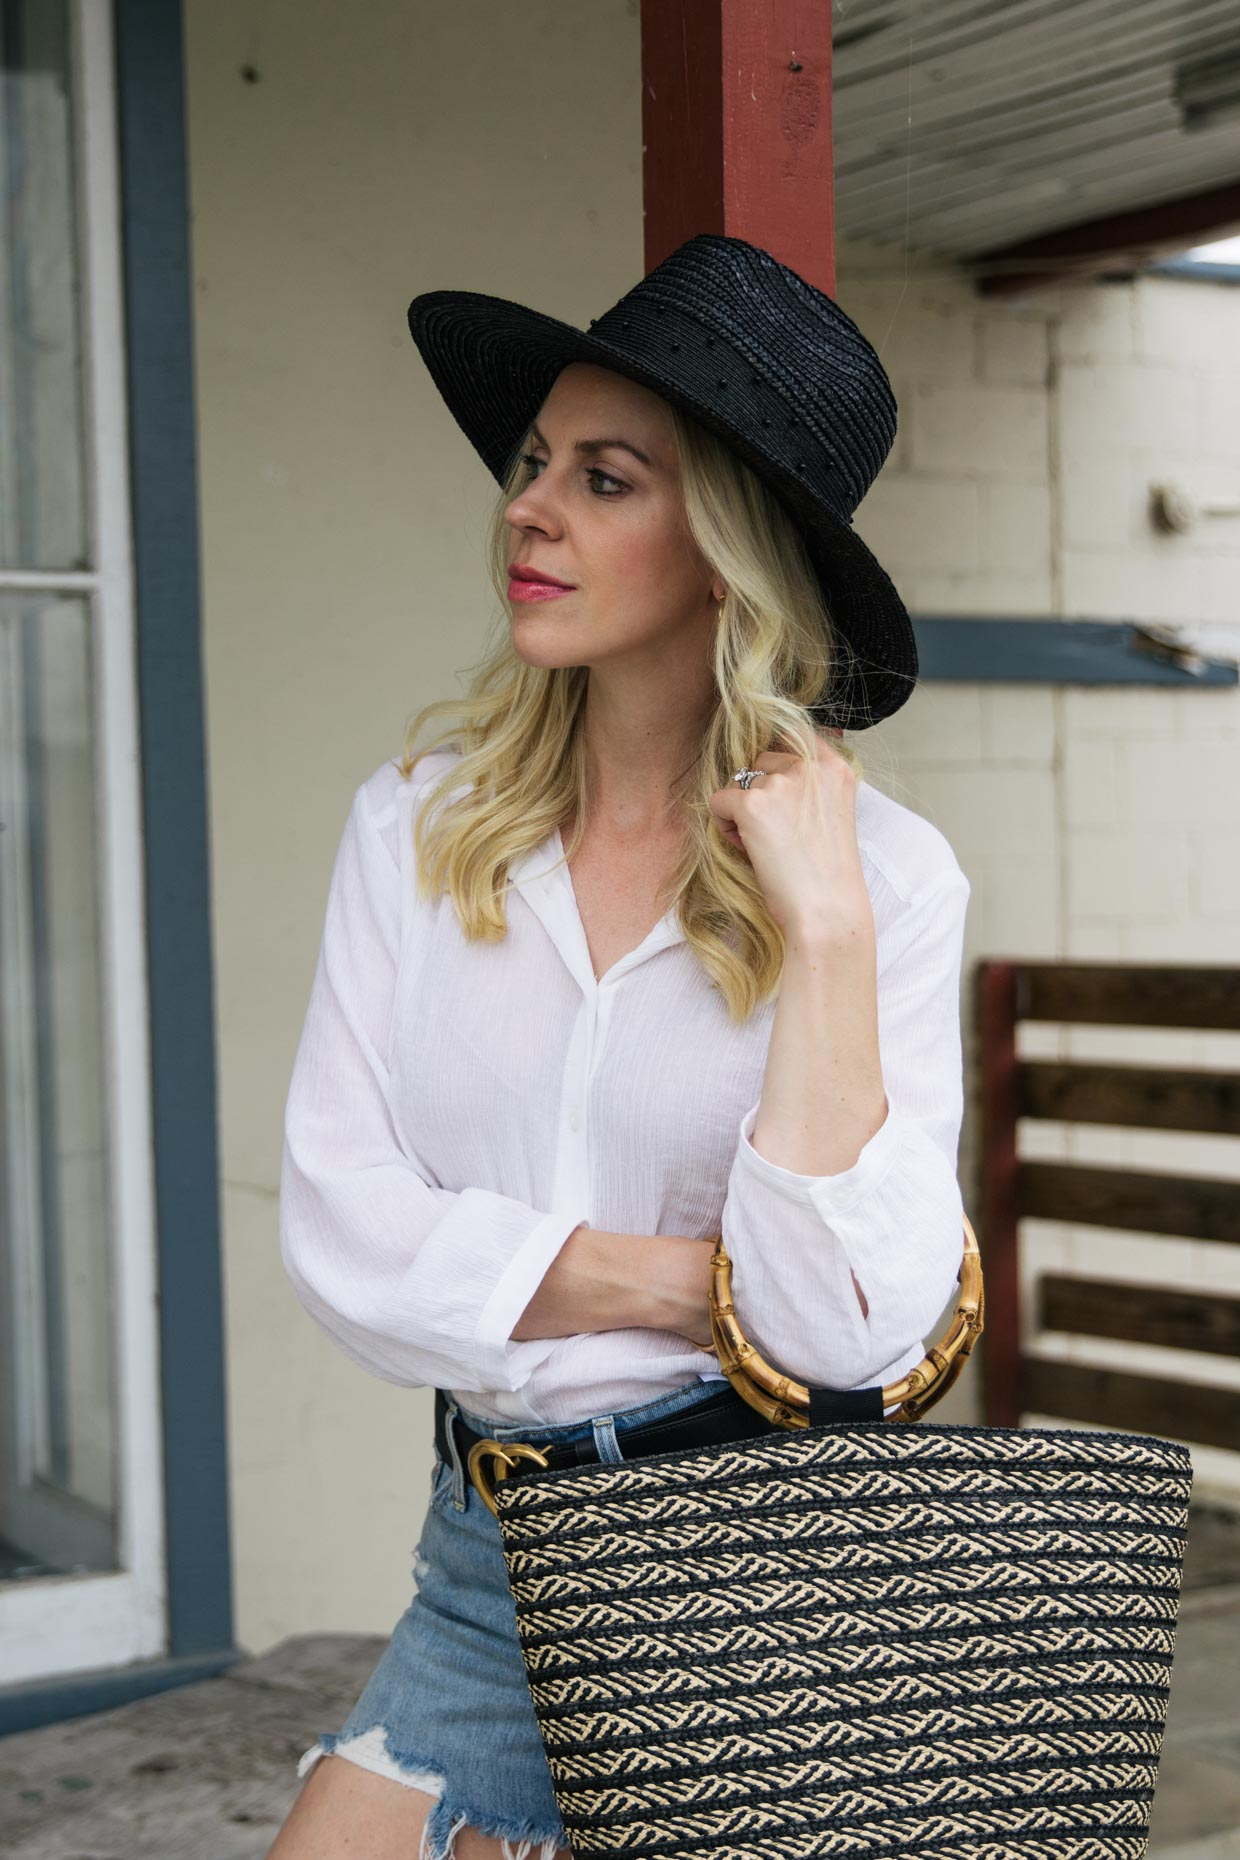 Chic Summer Outfit Idea With Brixton Macy Fedora Hat And Bamboo